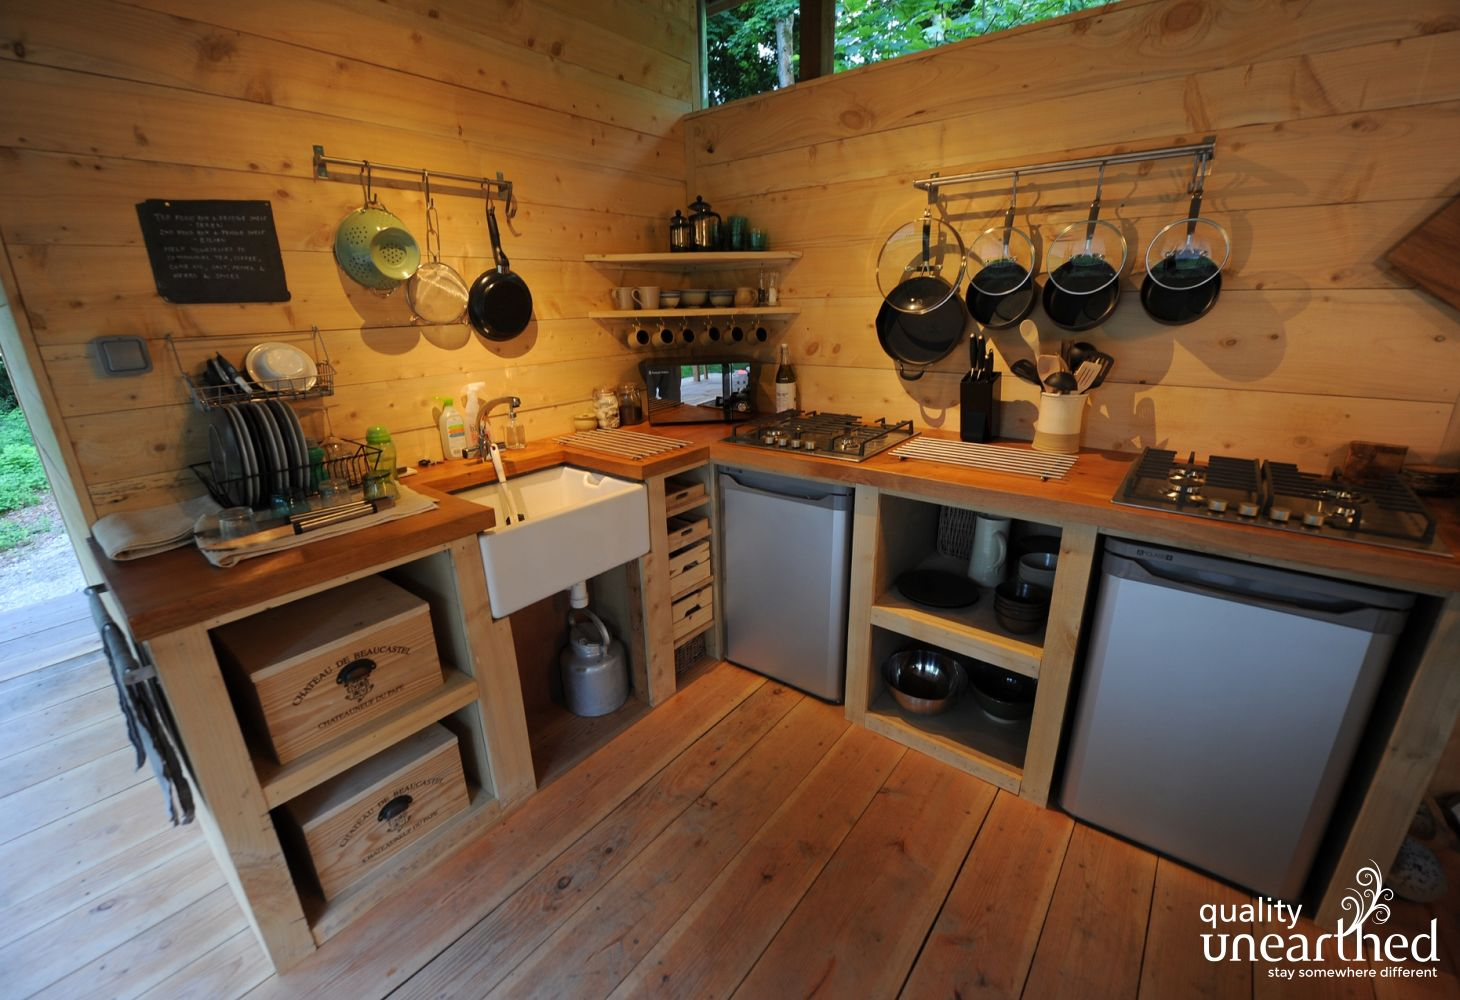 Fully serviced kitchen, shared by the 2 glamping yurts and the treehouse